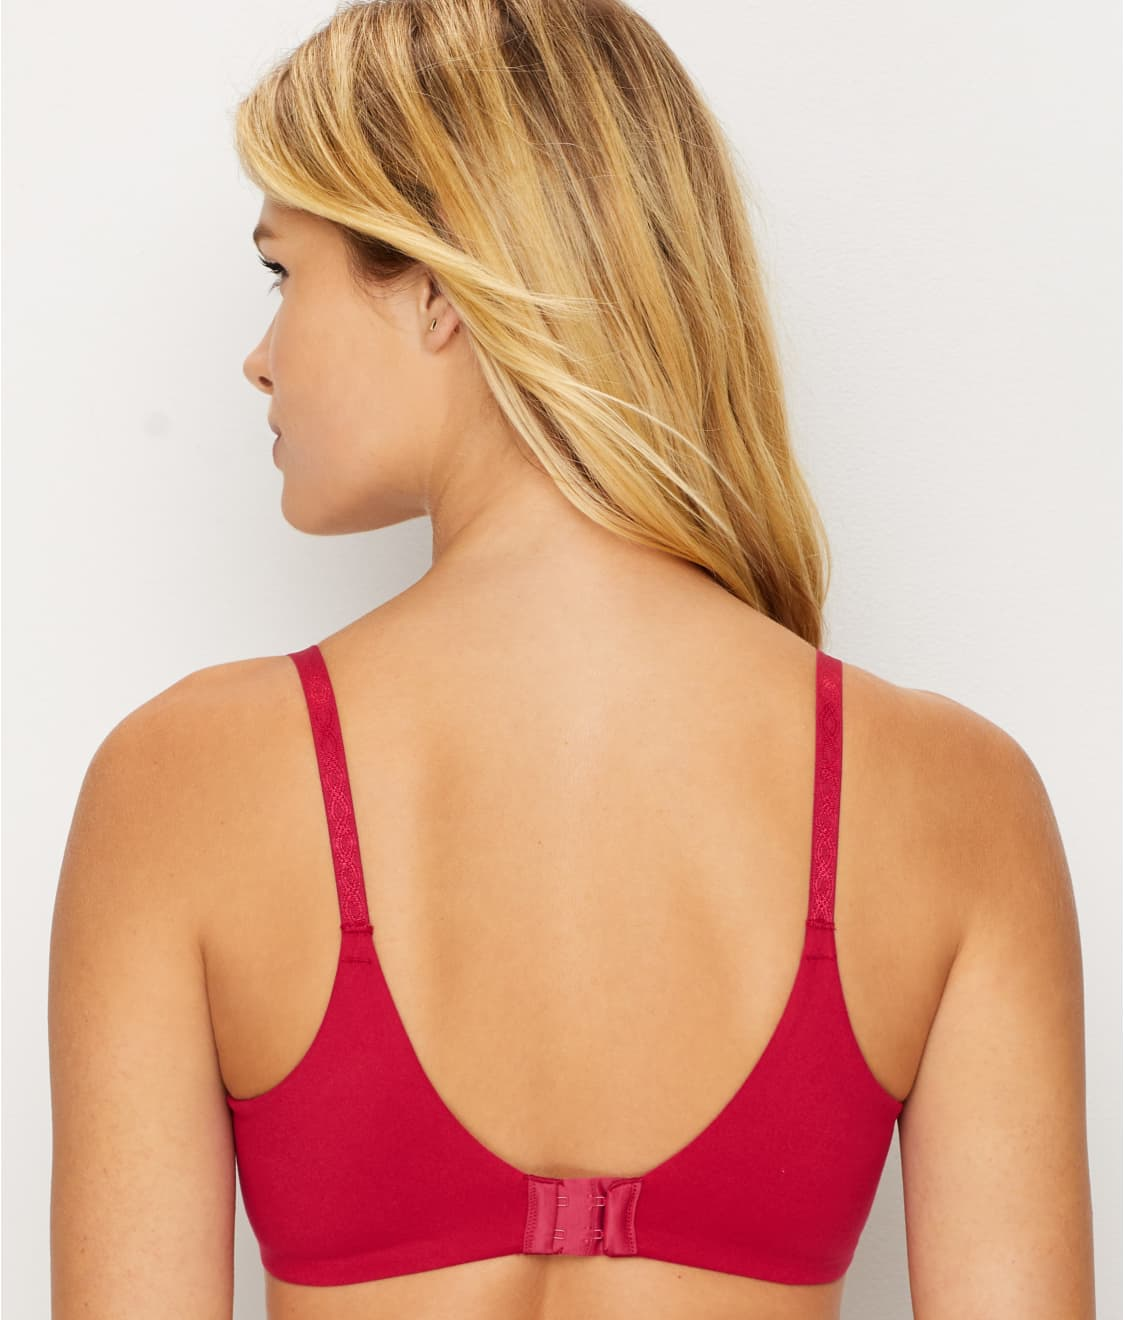 d480ff7c3ae Warner's Cloud 9 Back Smoothing T-Shirt Bra | Bare Necessities (RB1691A)